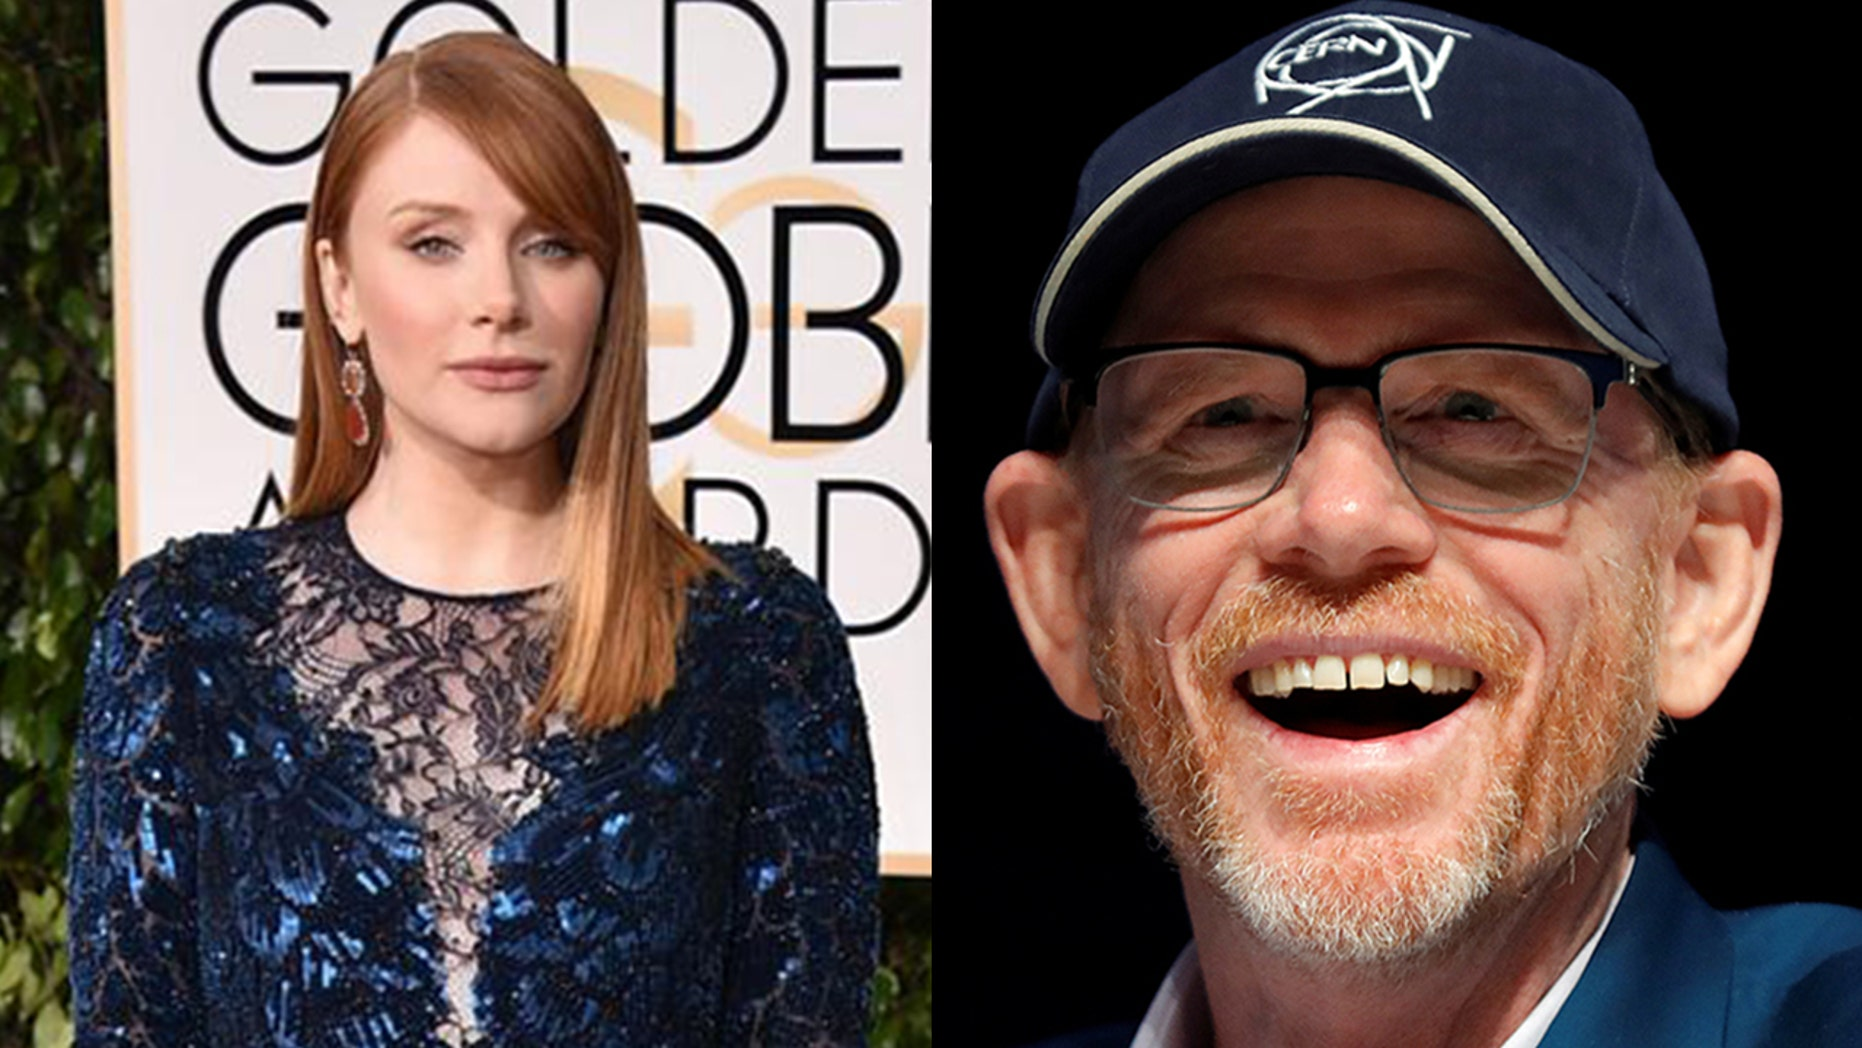 Bryce Dallas Howard opens up about being raised by famous father, Ron Howard.